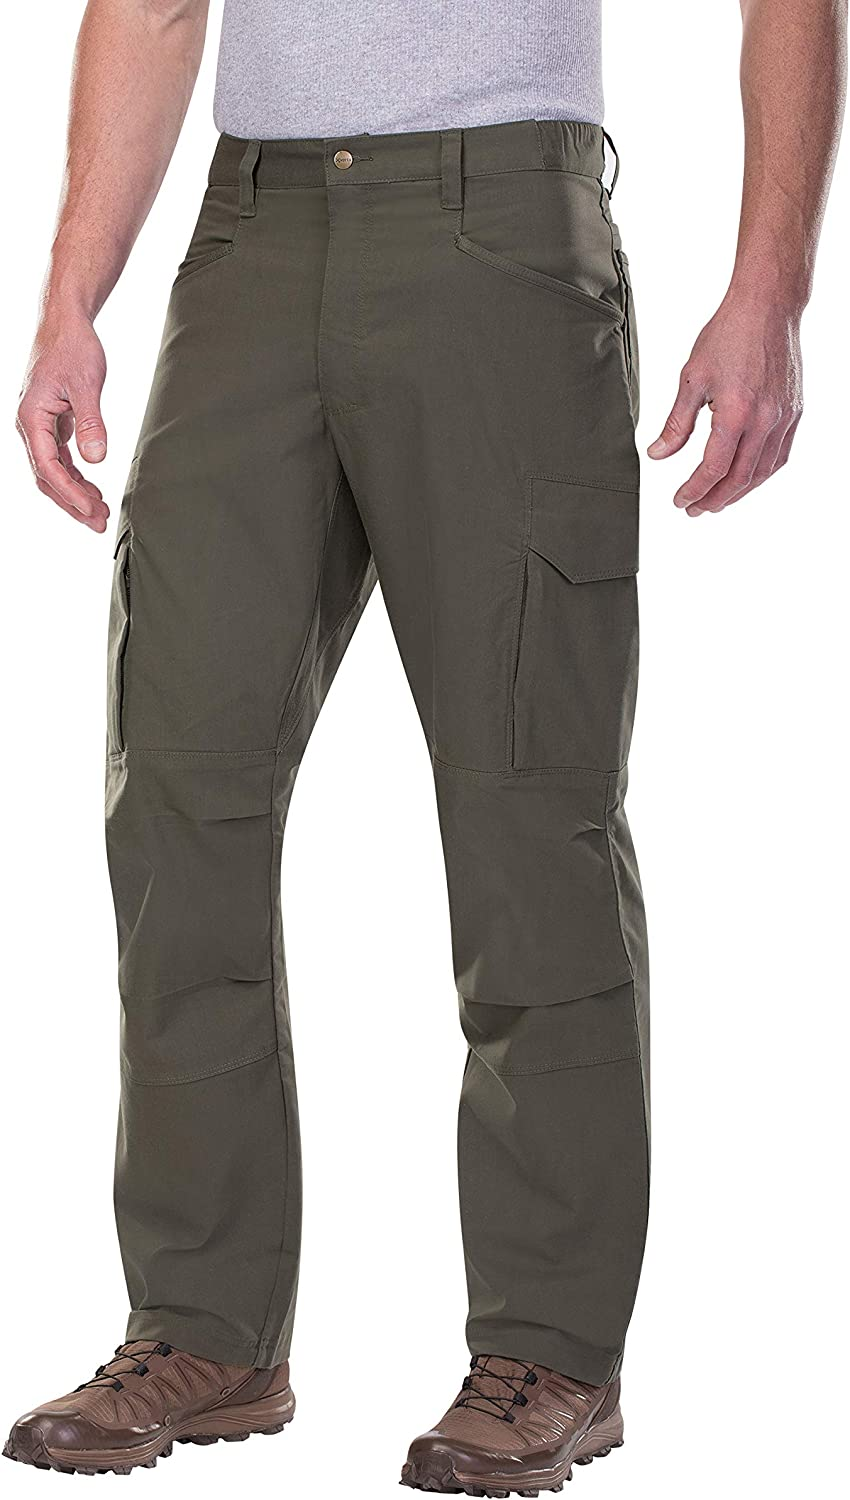 Vertx Now on sale Men's Easy-to-use Fusion Lt Tacical Stretch Pants